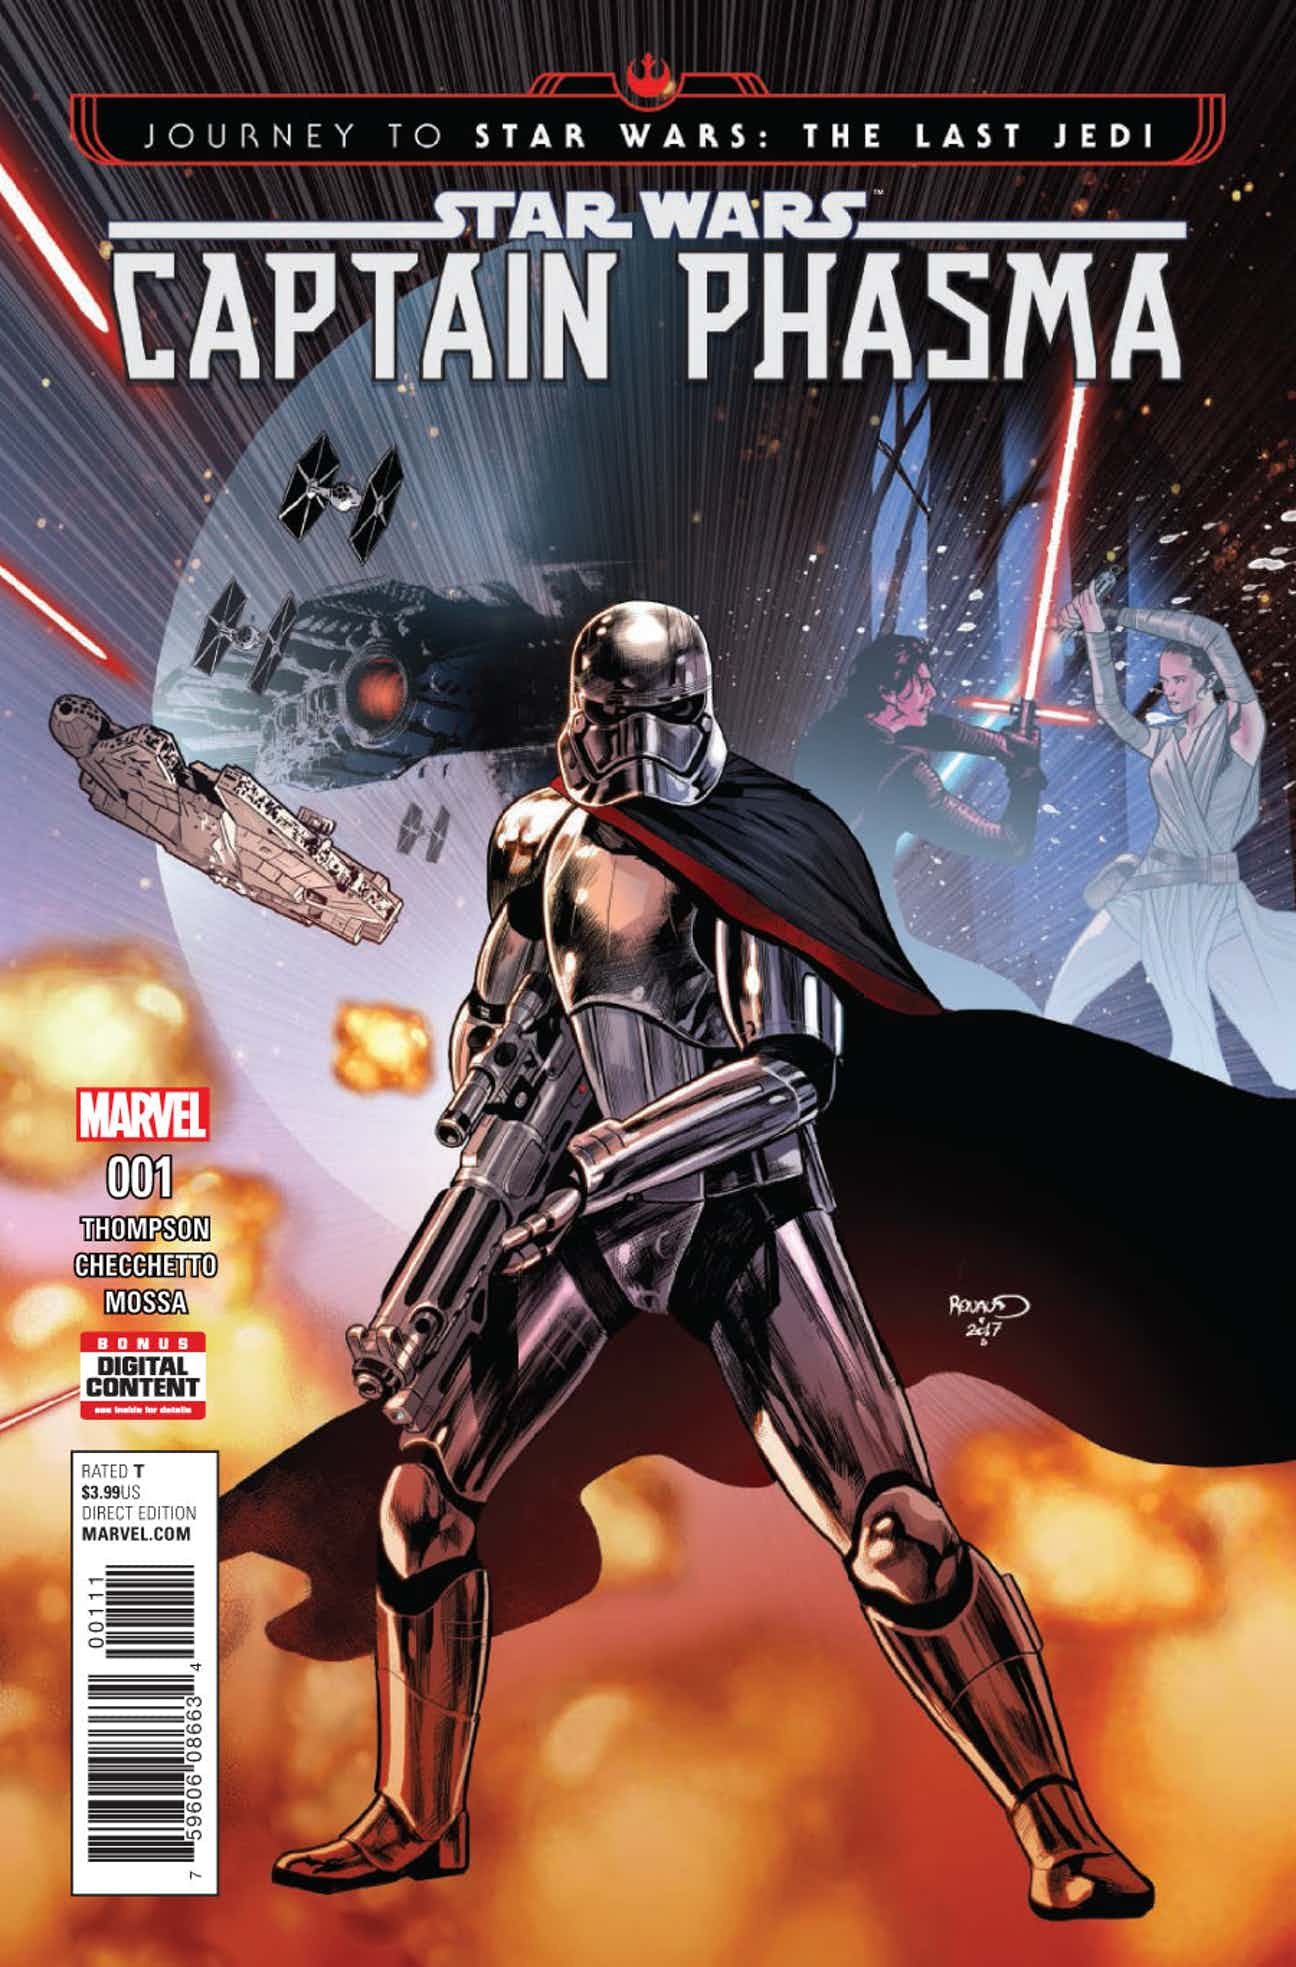 Journey to Star Wars: The Last Jedi - Captain Phasma Vol 1 1